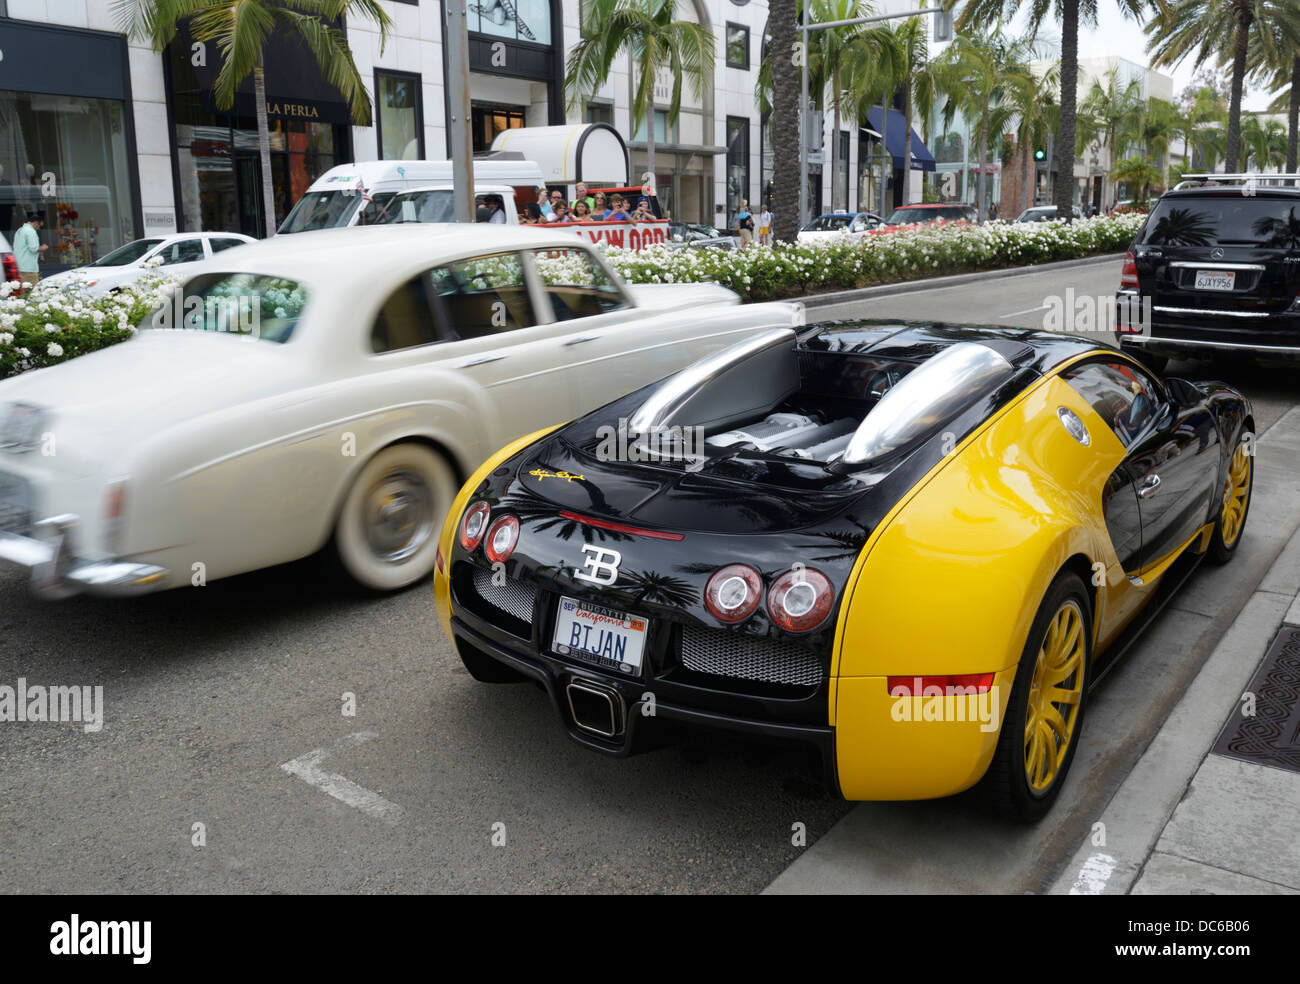 Bugatti Veyron and Rolls Royce on Rodeo Drive, Beverly Hills, CA - Stock Image